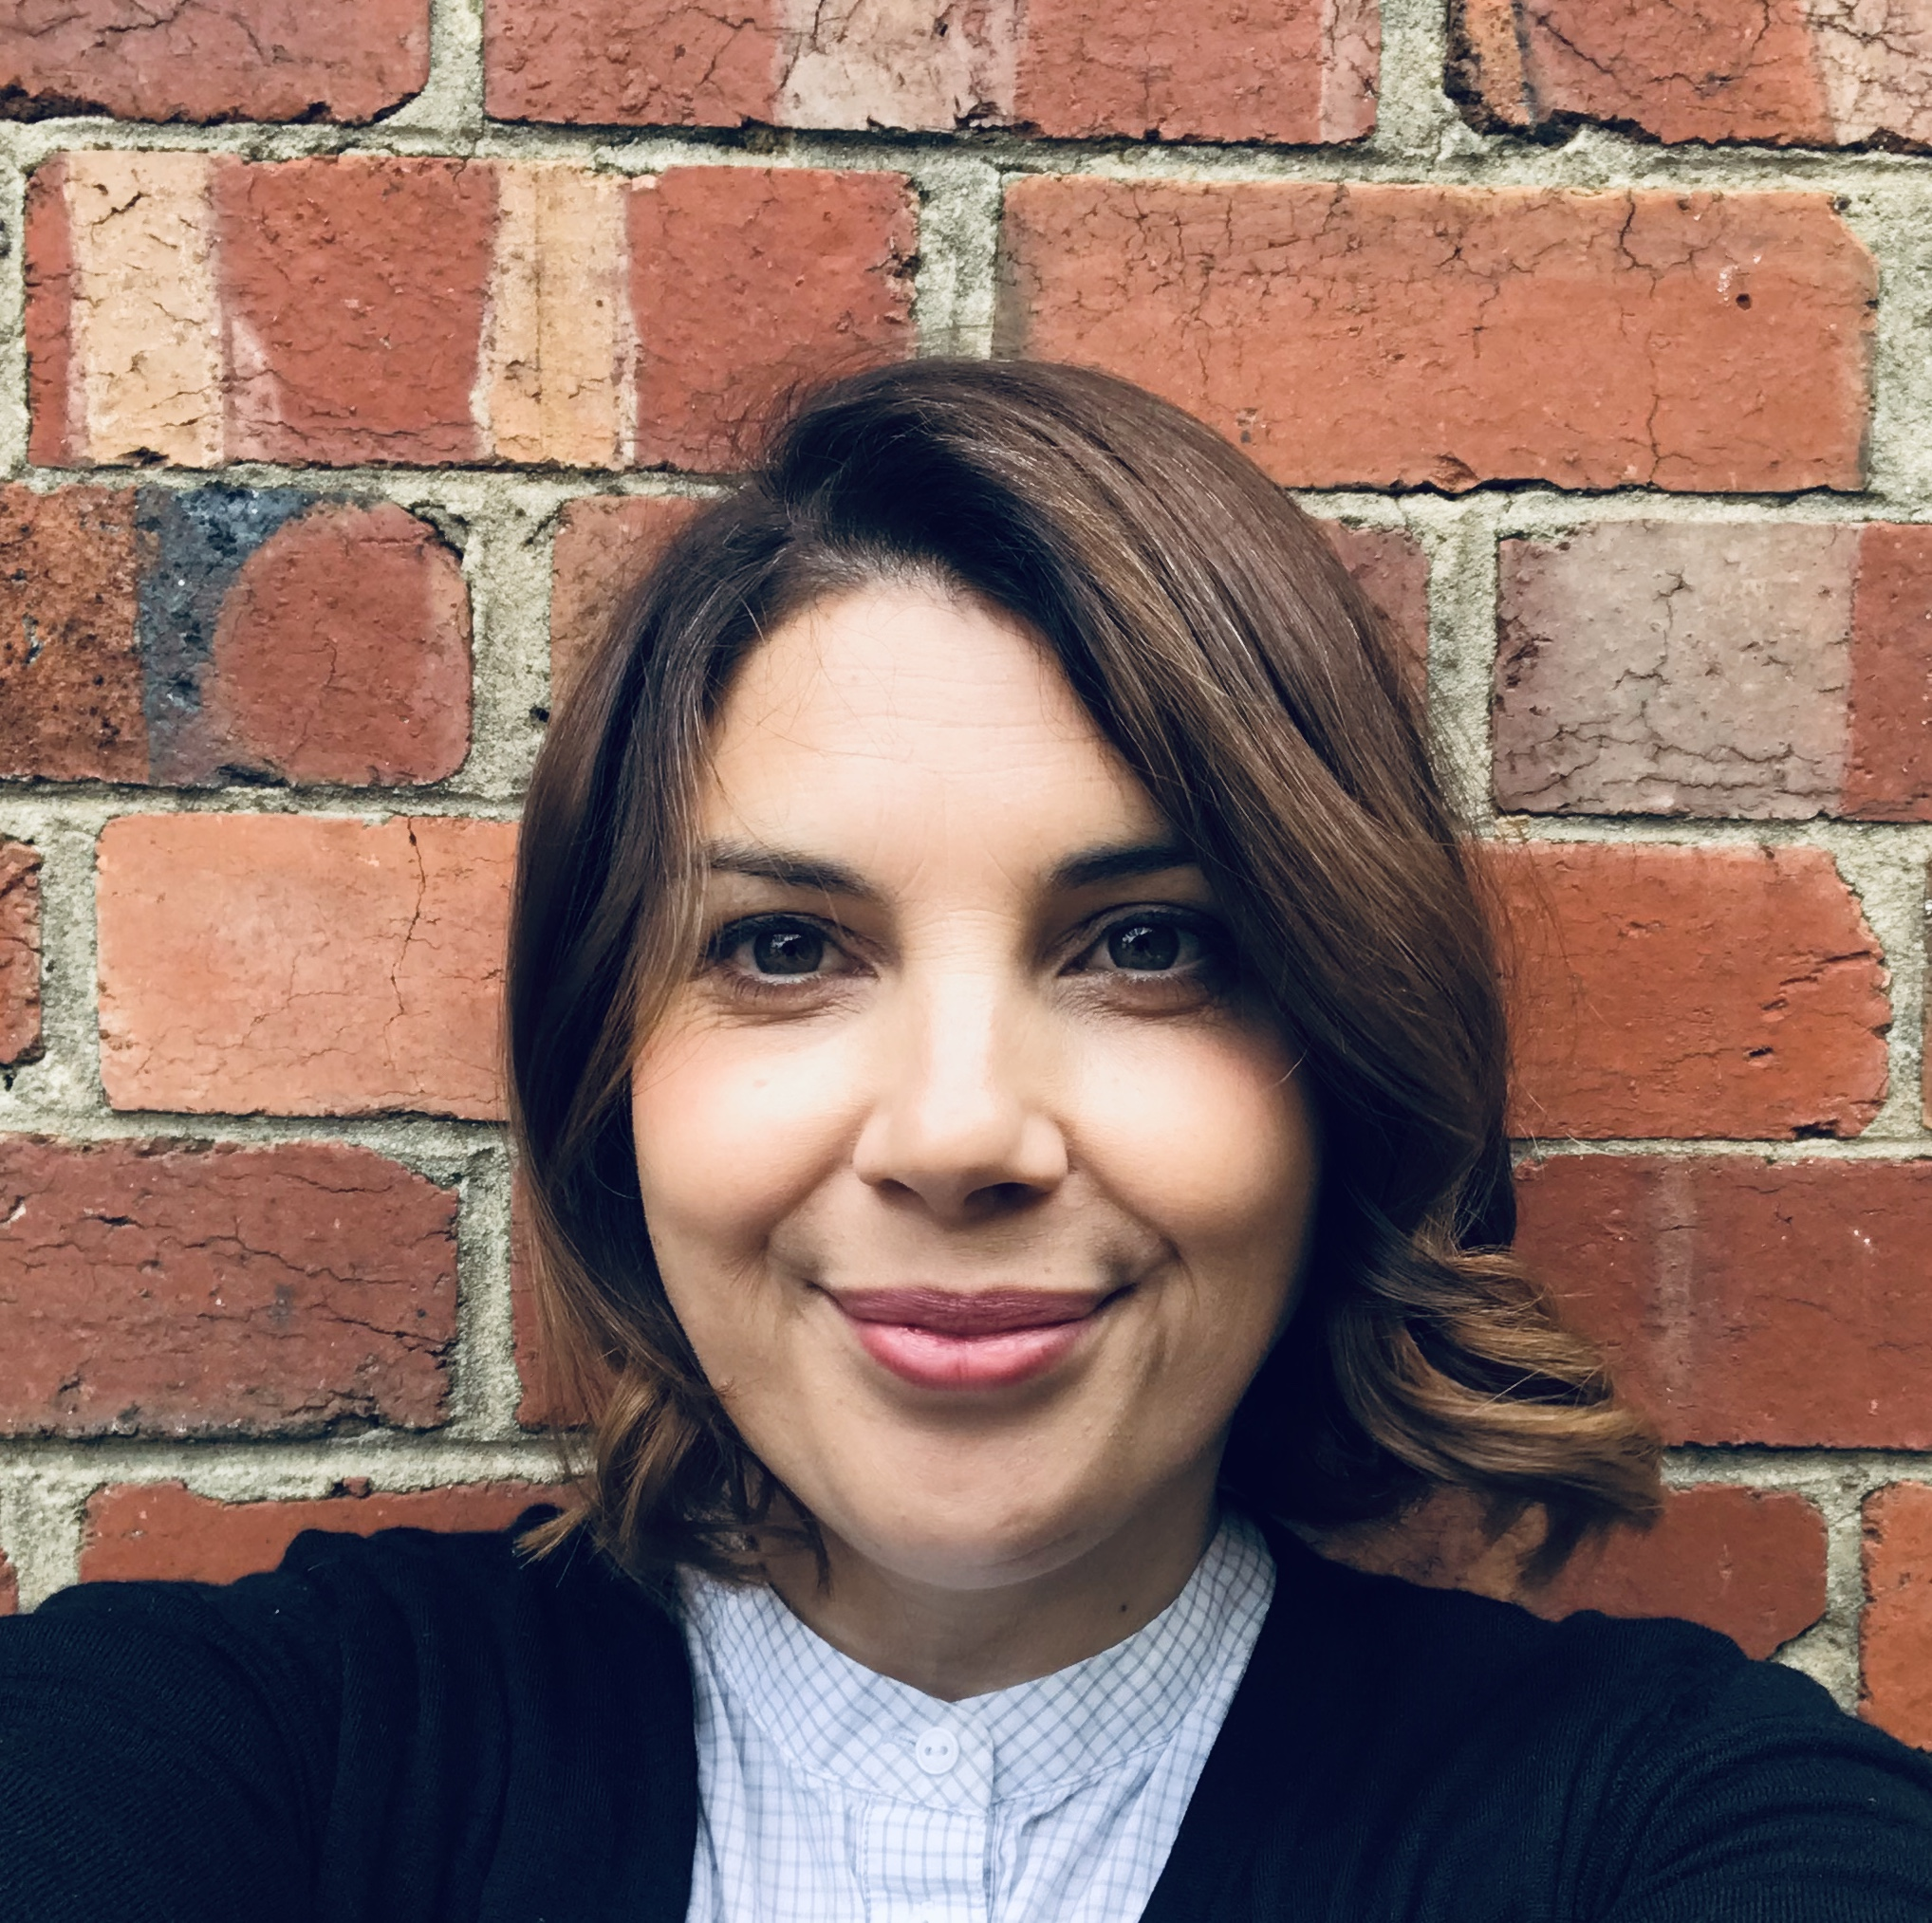 Anna Priestland  is a true crime and narrative nonfiction writer. Her work can be heard on podcasts including Casefile: True Crime (Aus), The Vanished (USA), Murdertown (Crime+Investigation UK), They Walk Among Us (UK), Canadian True Crime (CAN)